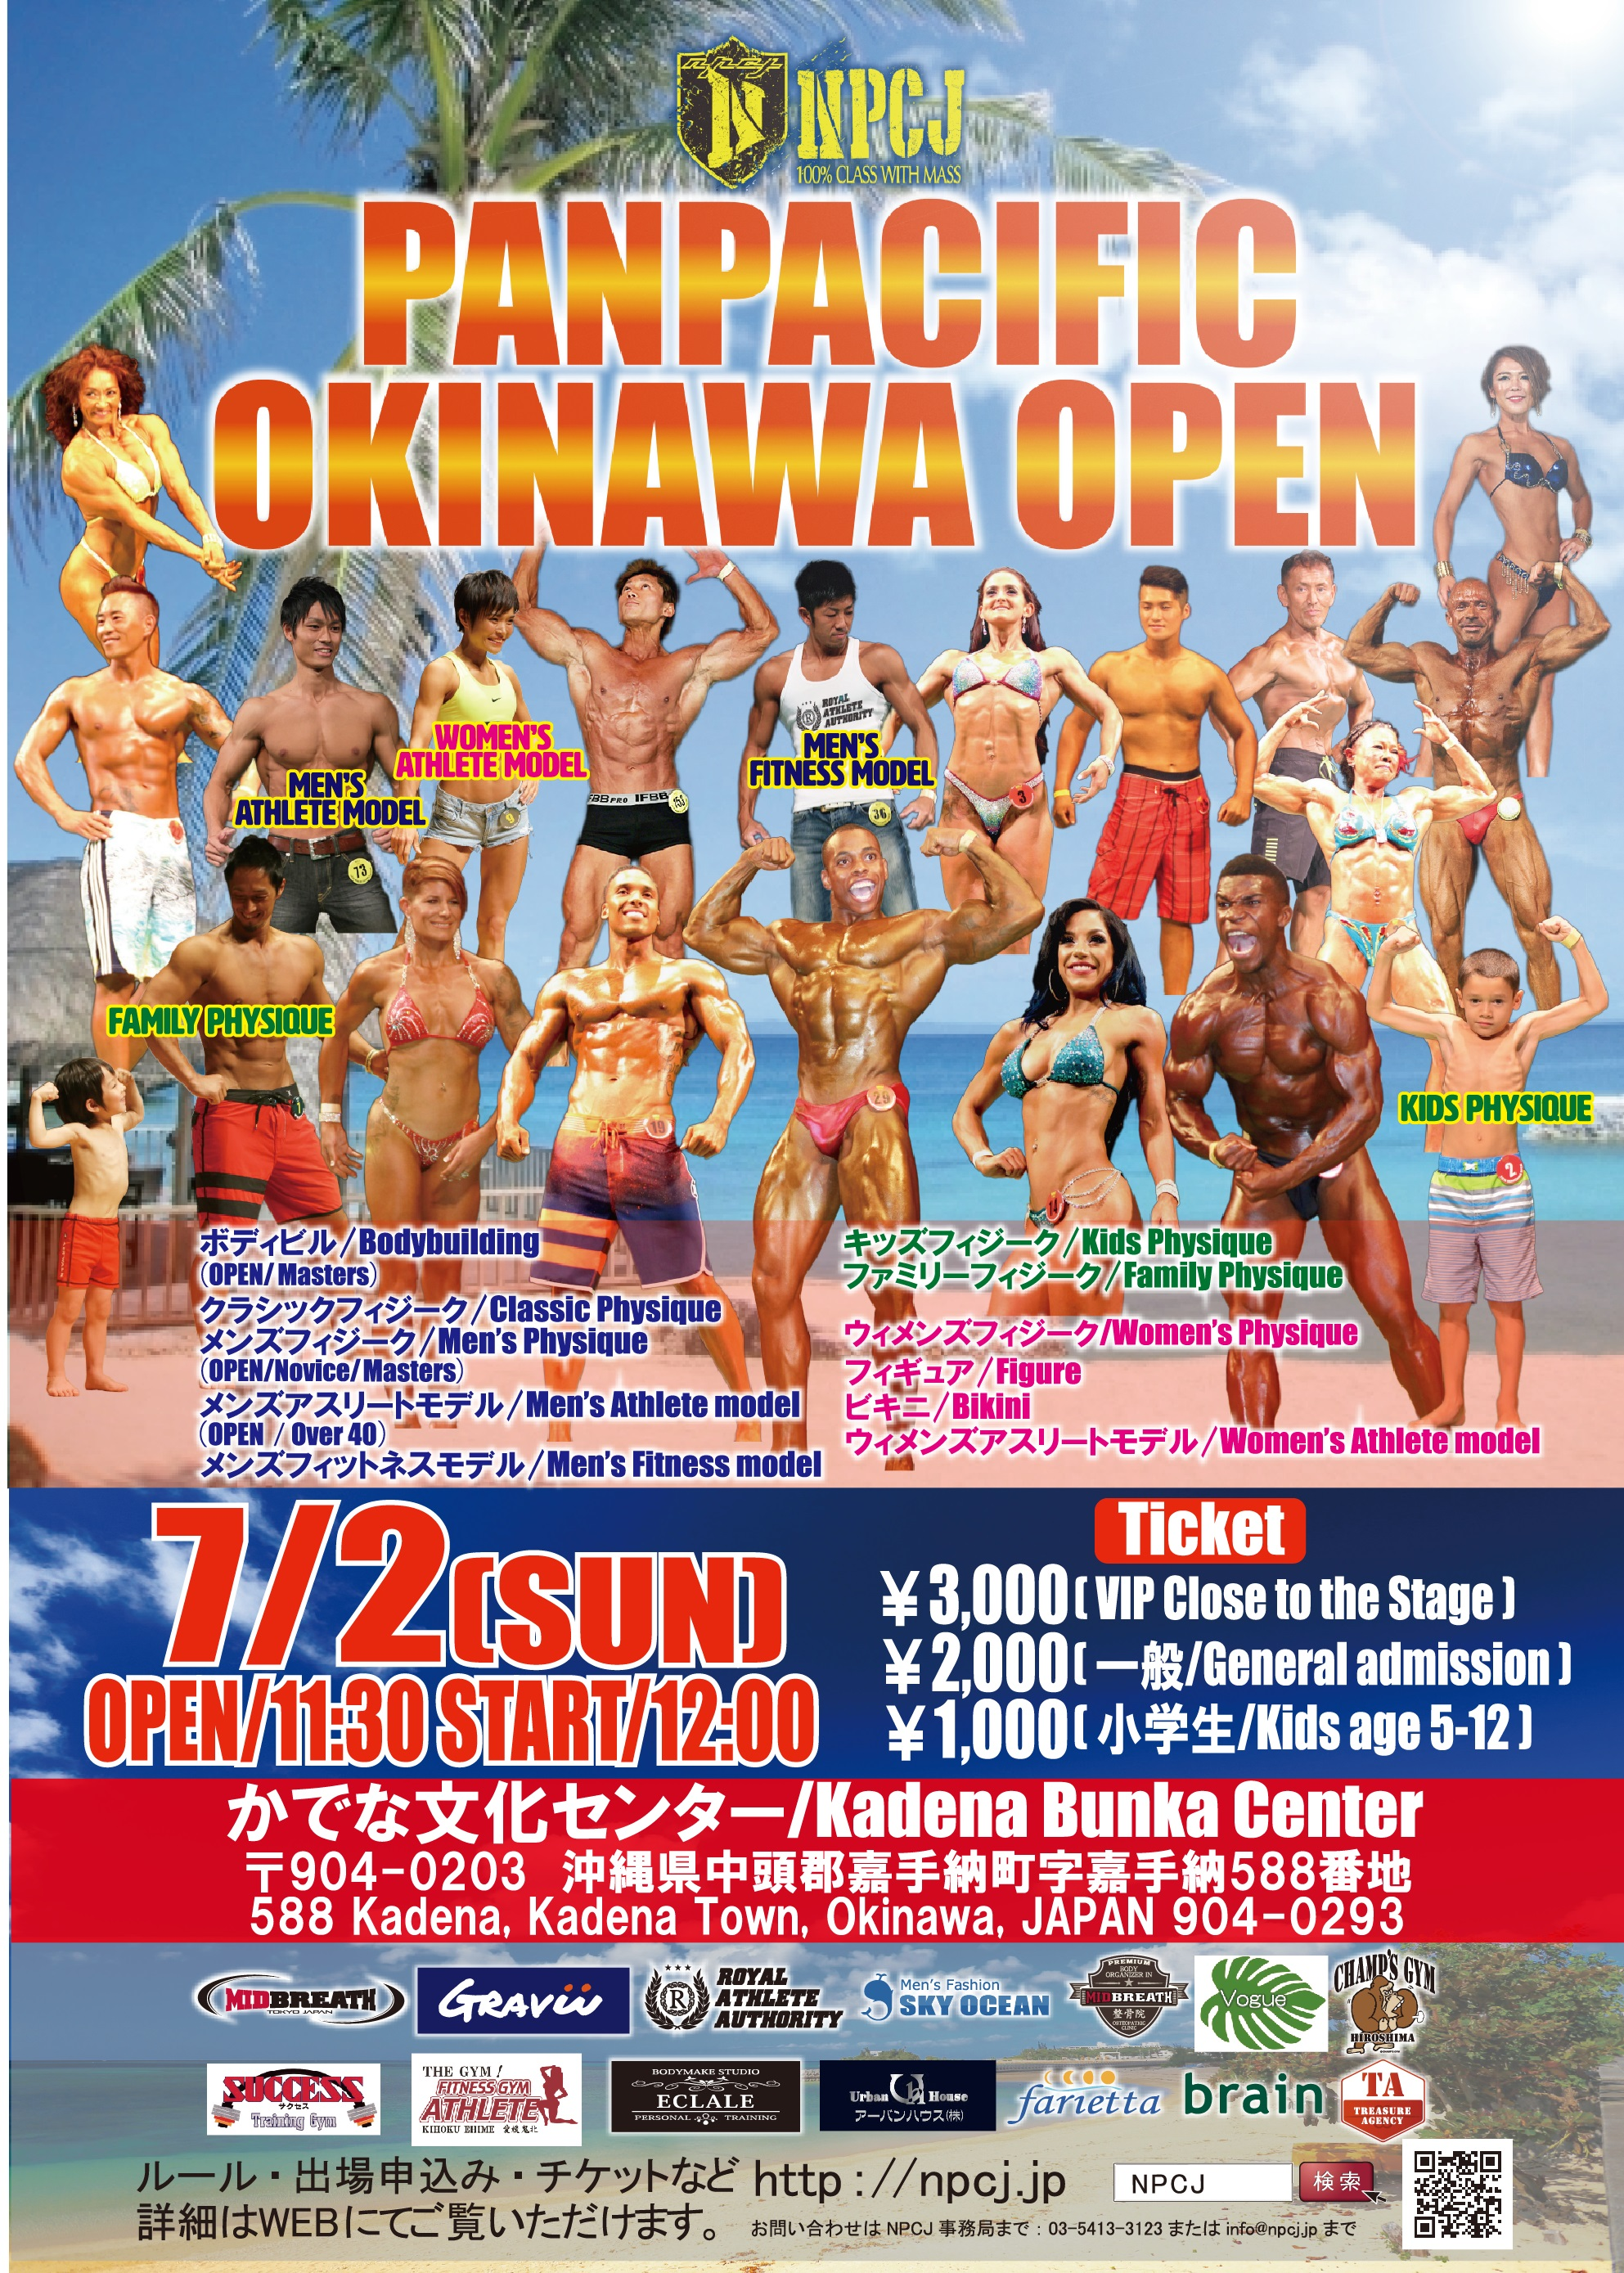 PANPACIFIC OKINAWA OPEN